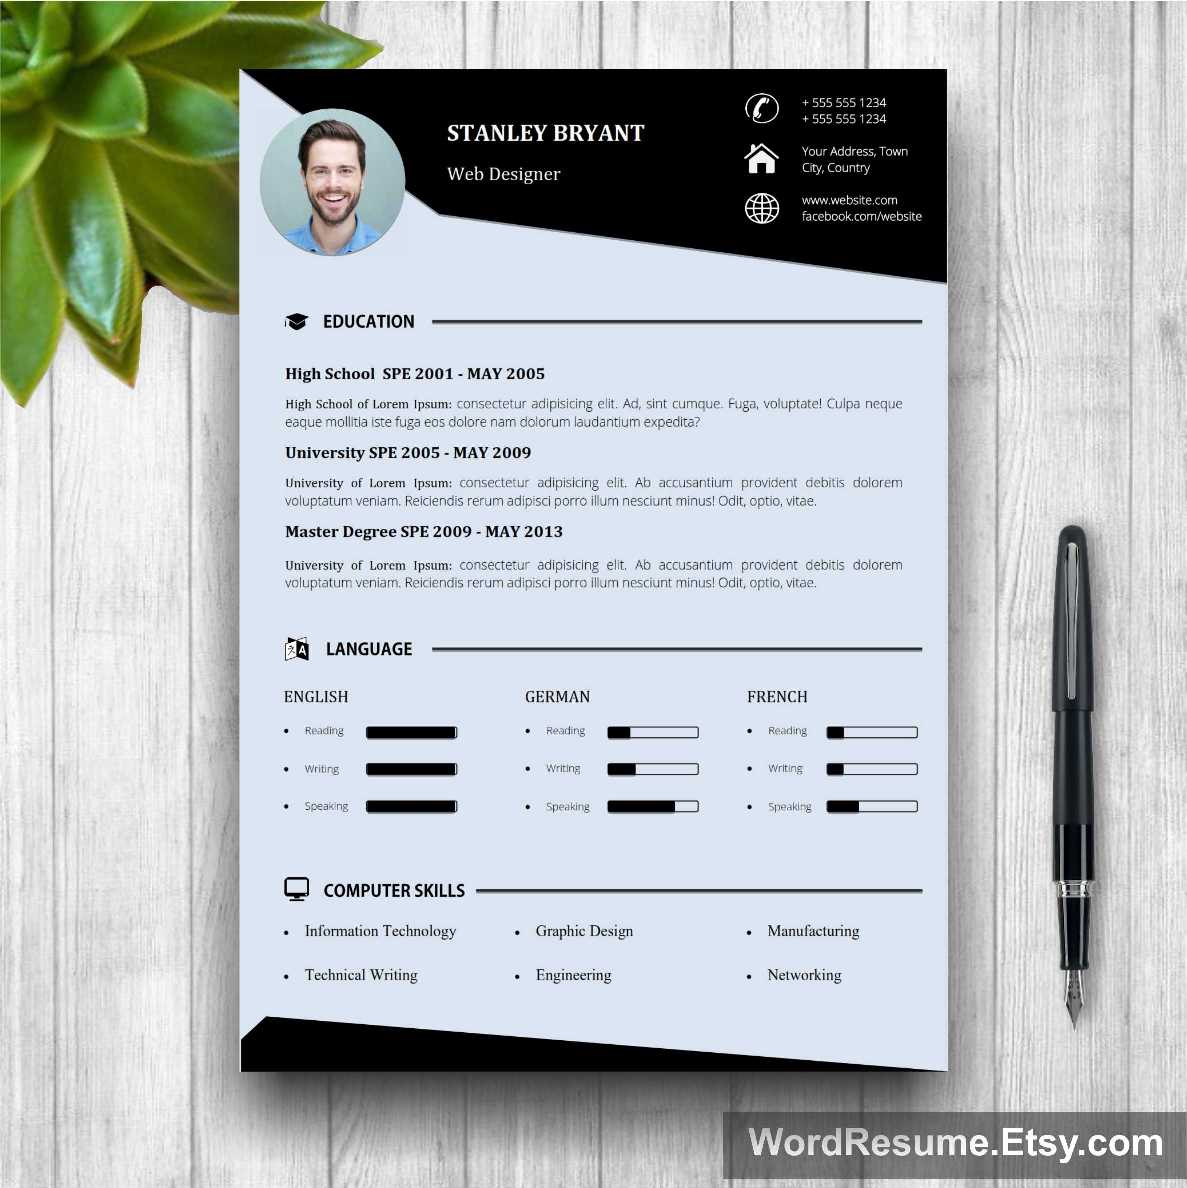 Modern Resume Template With Photo + Cover Letter